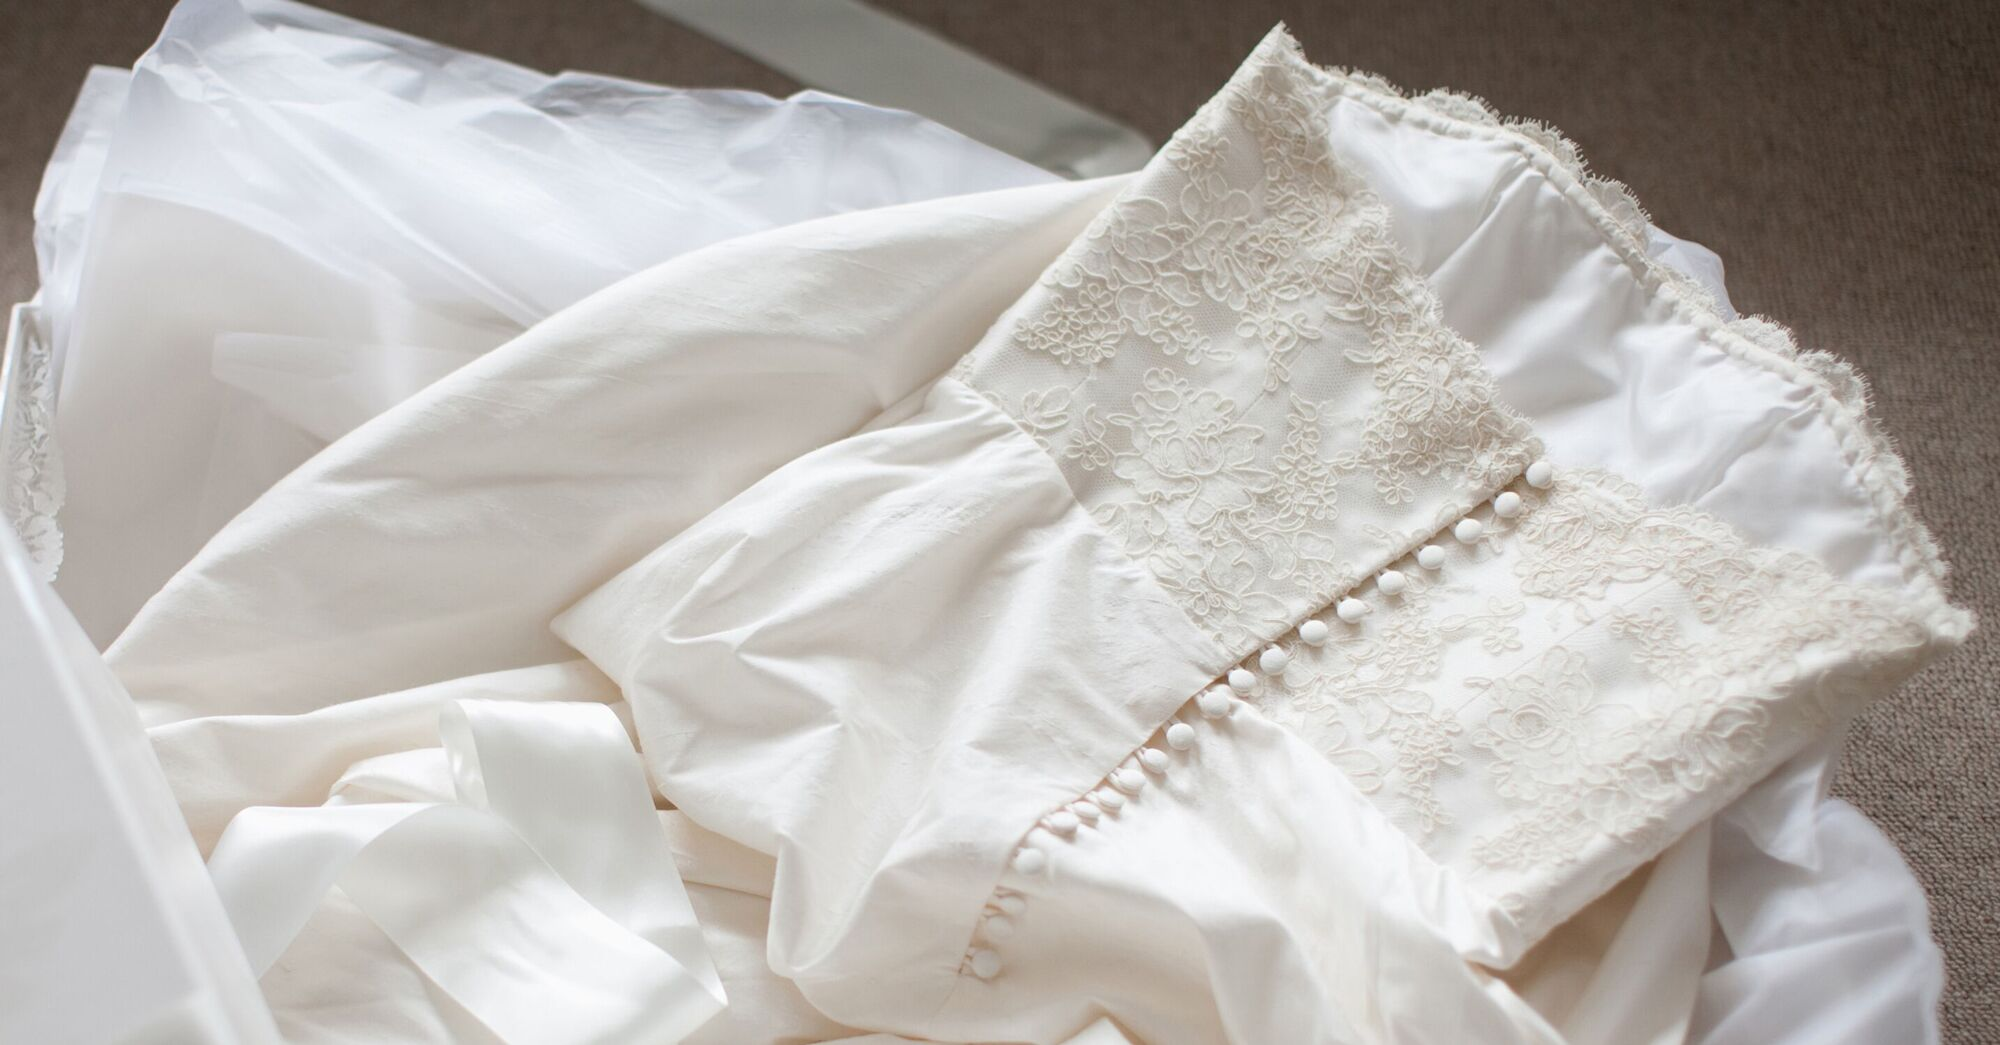 Used Wedding Dresses Where To Buy Sell A Preowned Wedding Dress,Formal Dresses For Wedding South Africa